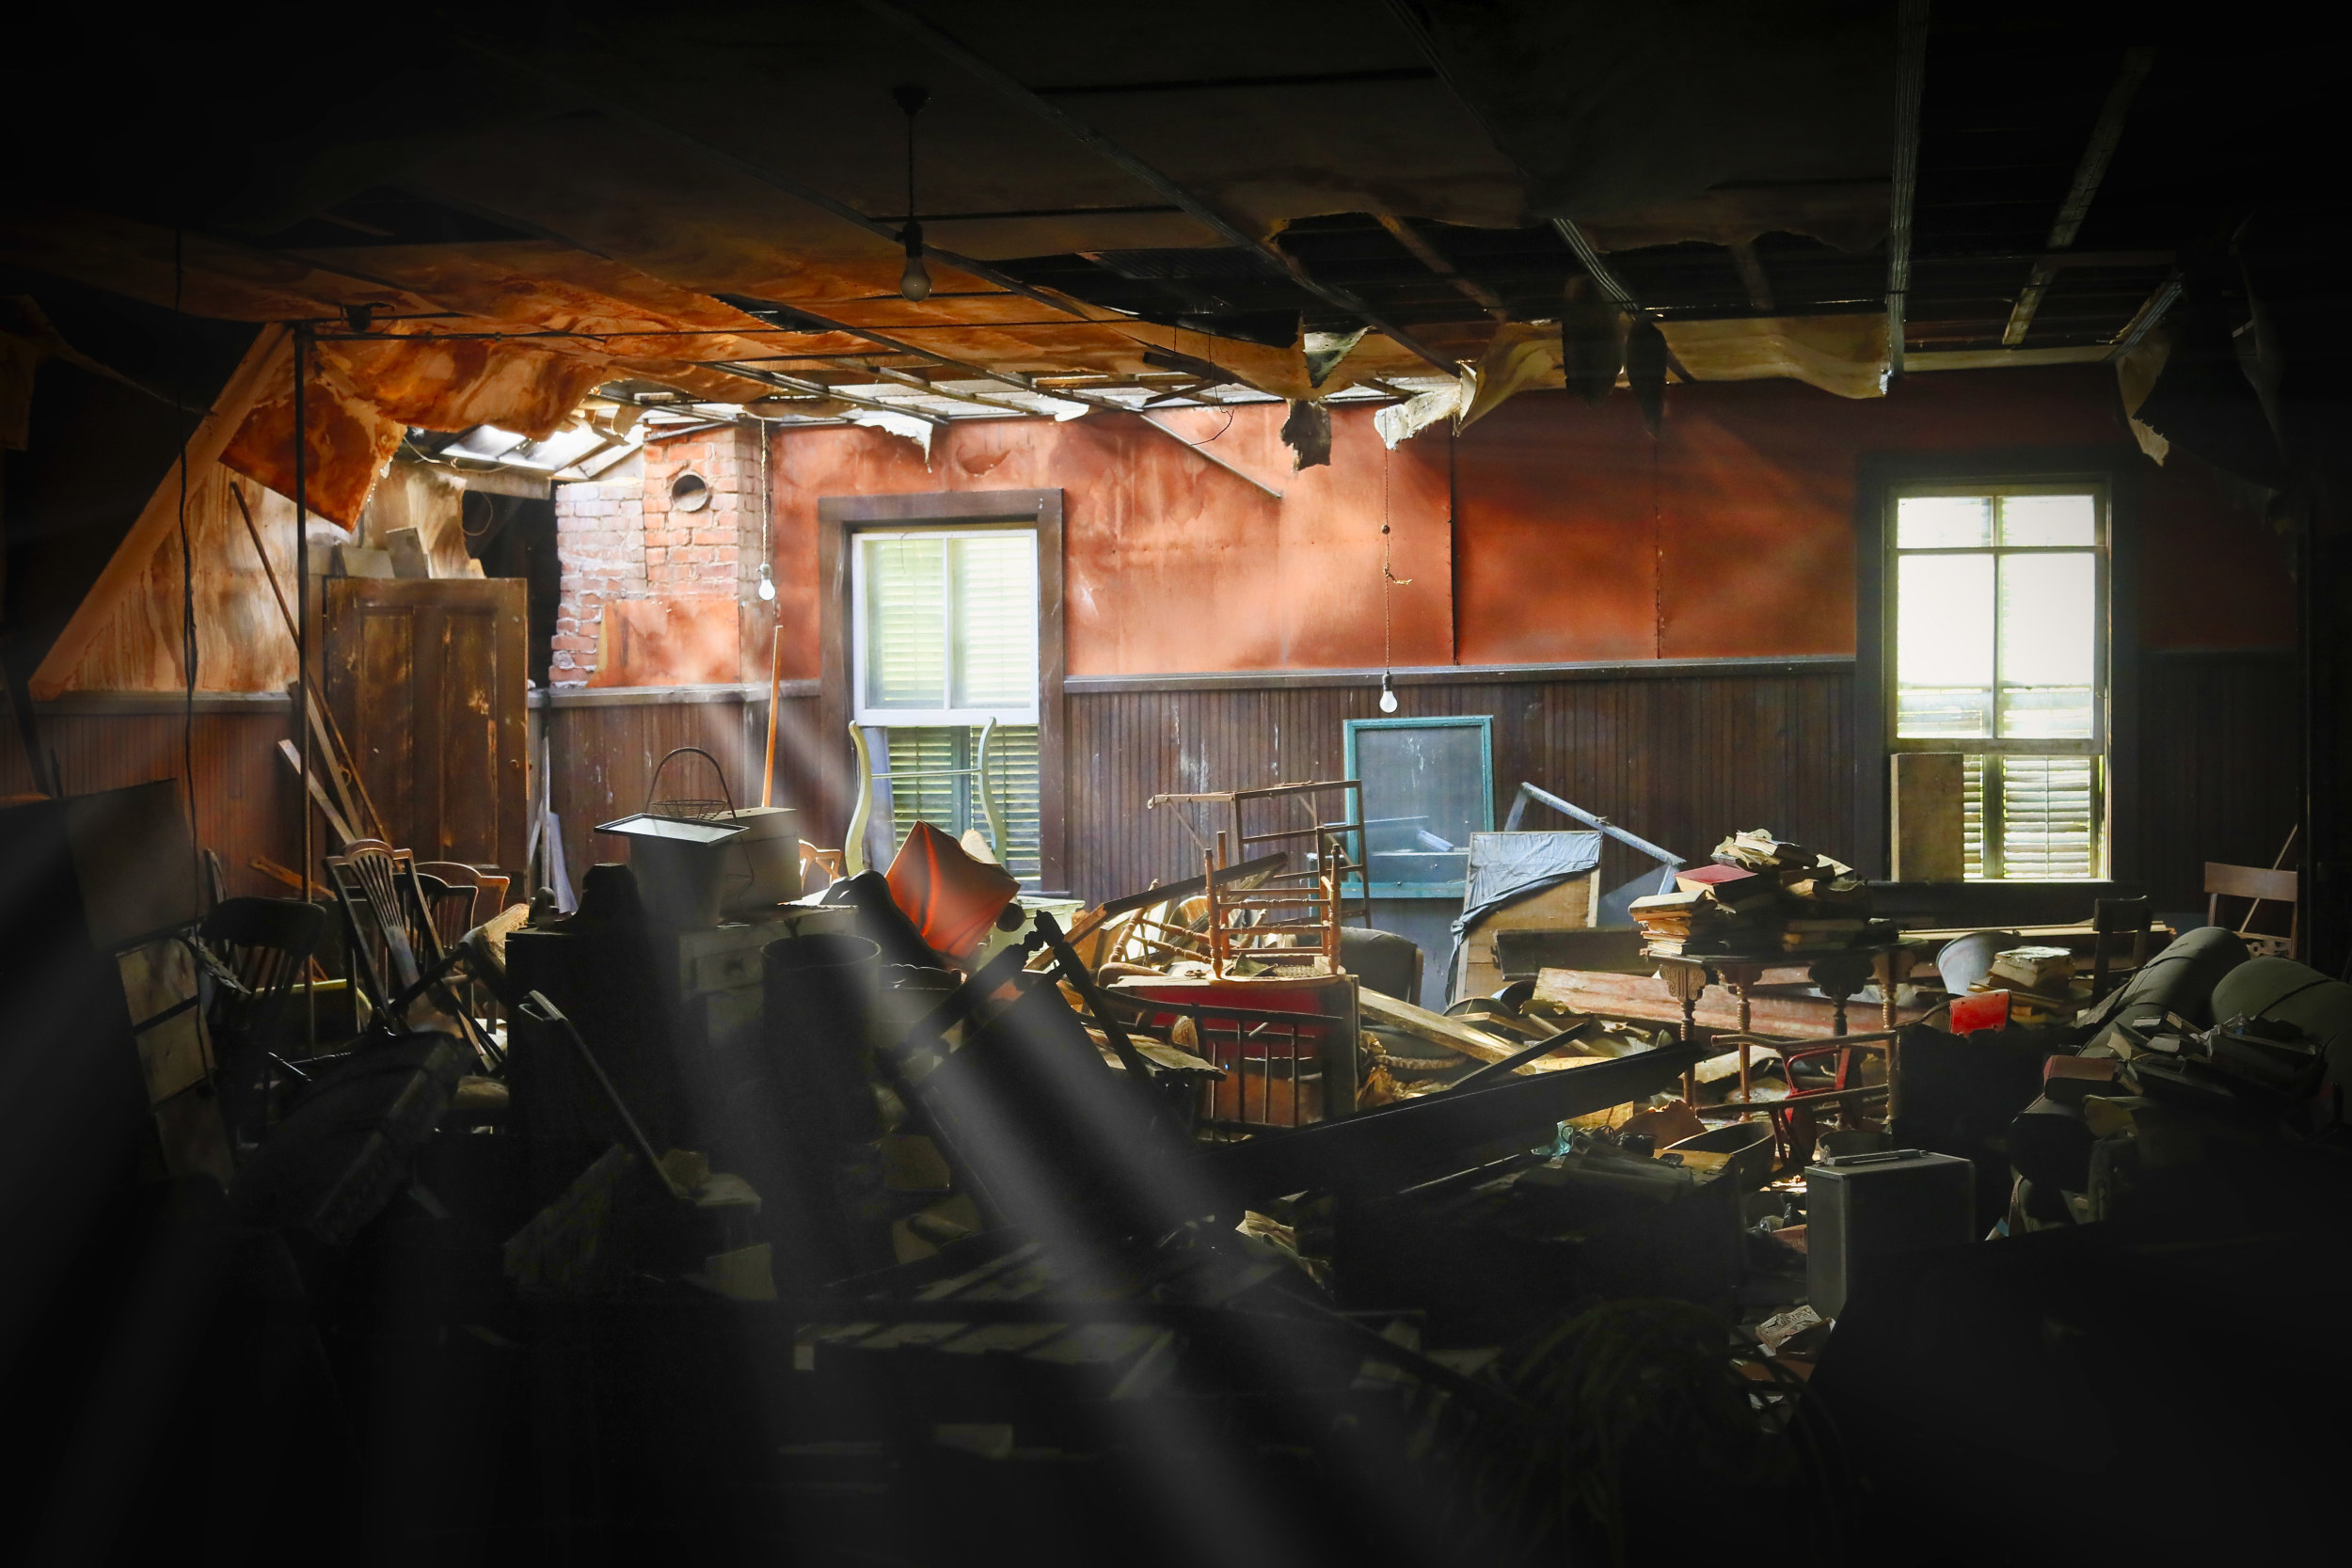 Beautiful, bright light radiating and streaming through a hole in the roof into a room filed with vintage furniture and historical relics.